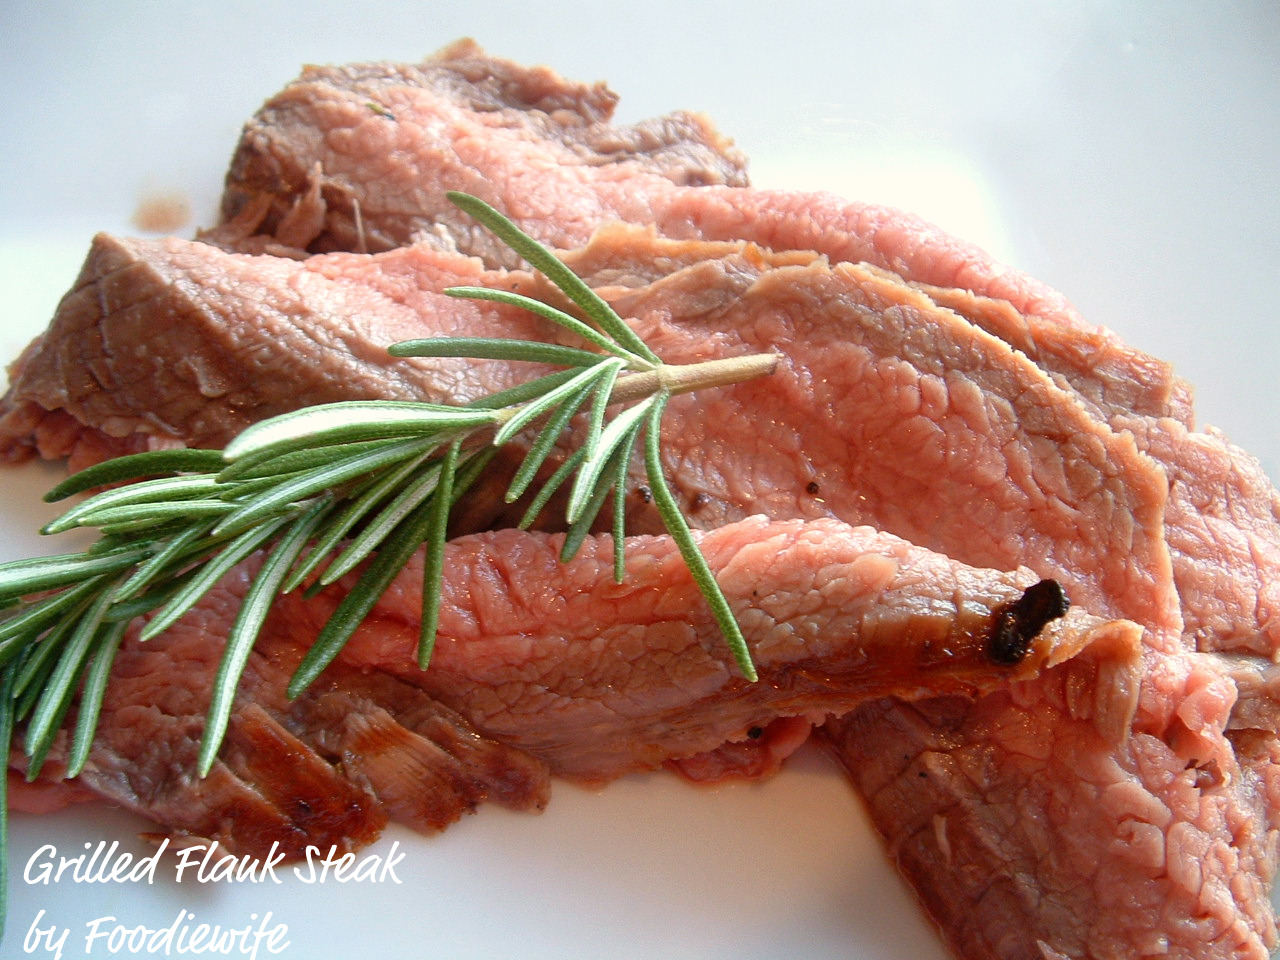 ... the Eyes: Grilled Flank Steak with Garlic-Shallot-Rosemary Marinade